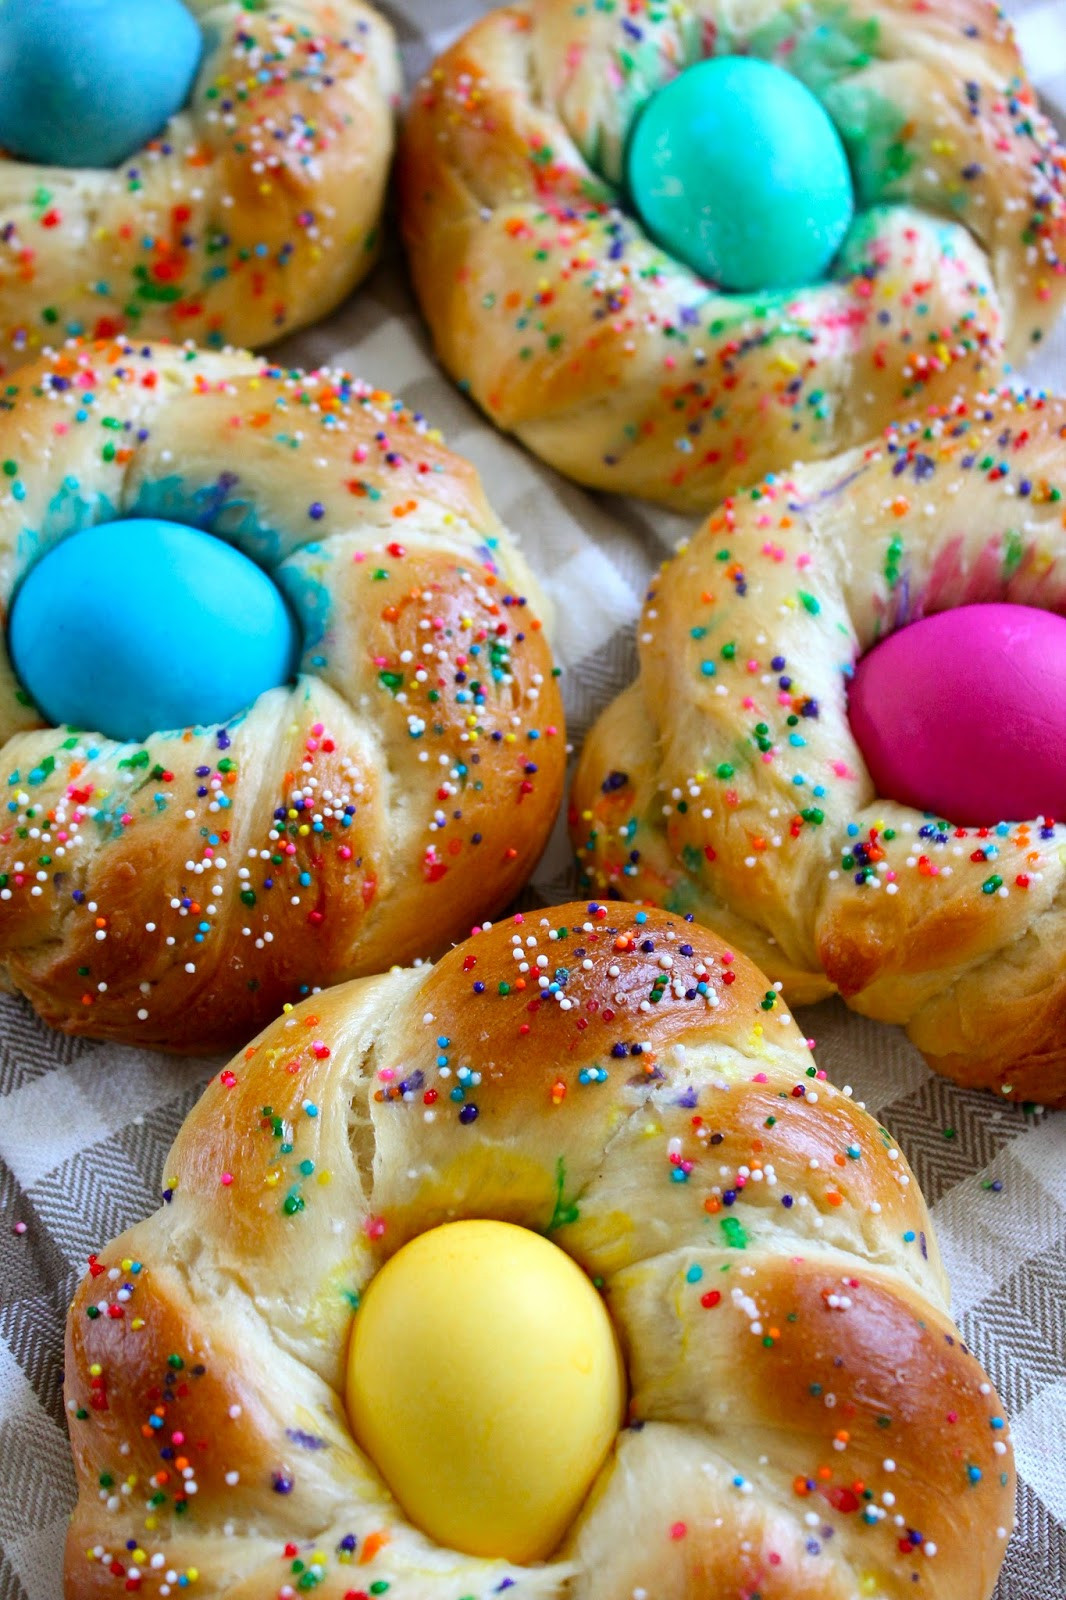 Italian Easter Bread With Eggs  The Cultural Dish Recipe Italian Easter Egg Bread